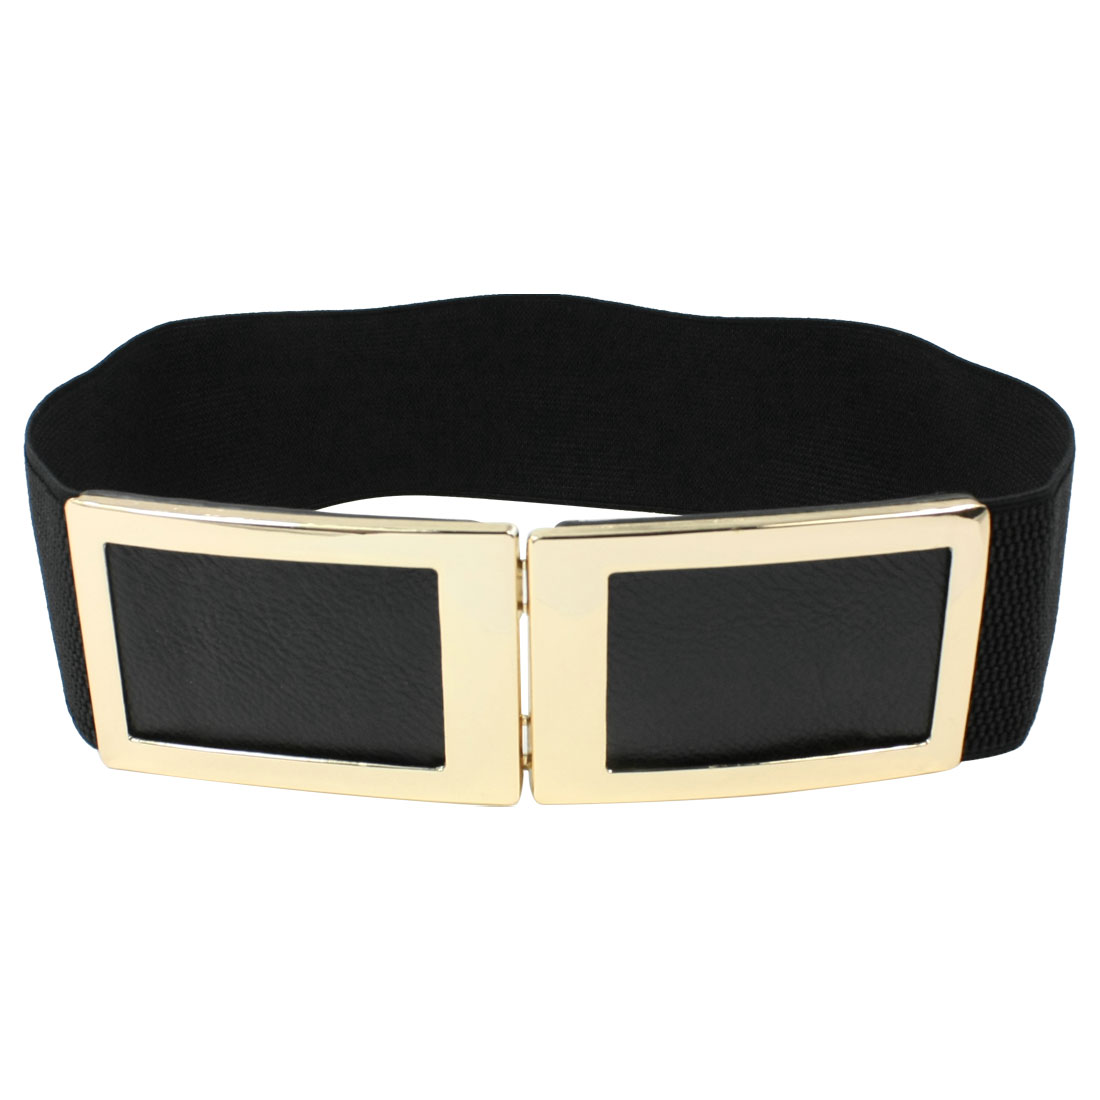 Ladies Rectangle Shaped Metal Interlocking Buckle Elastic Waist Belt Black